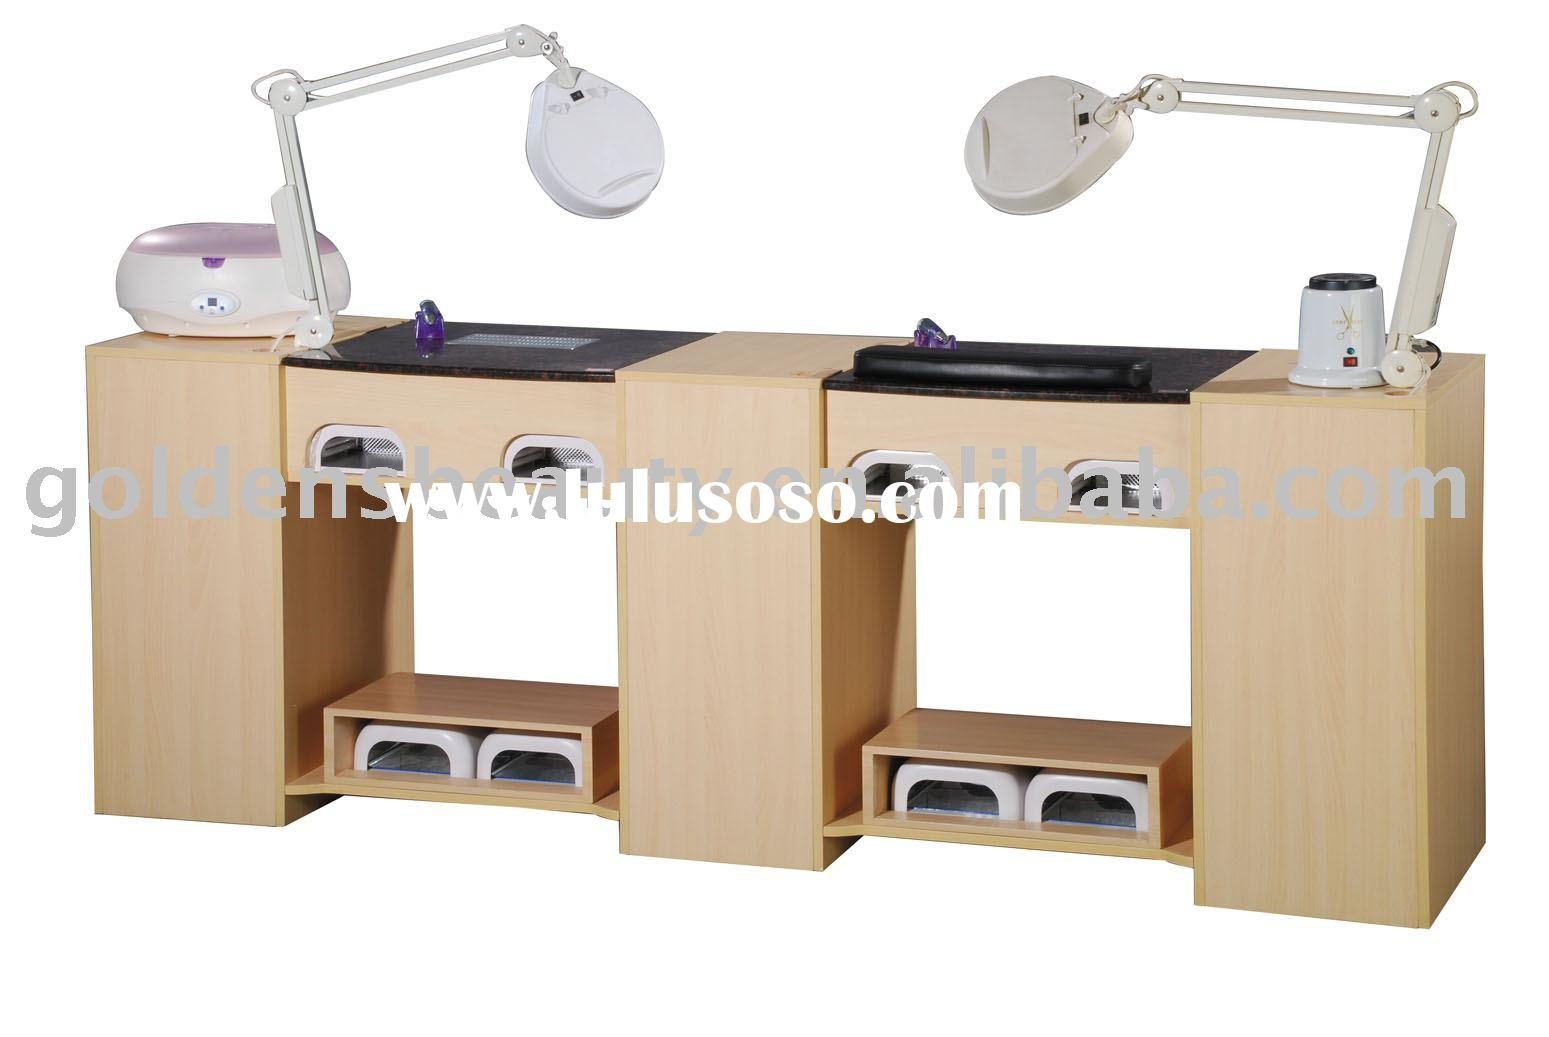 Nail manicure table nail manicure table manufacturers in for Nail salon table